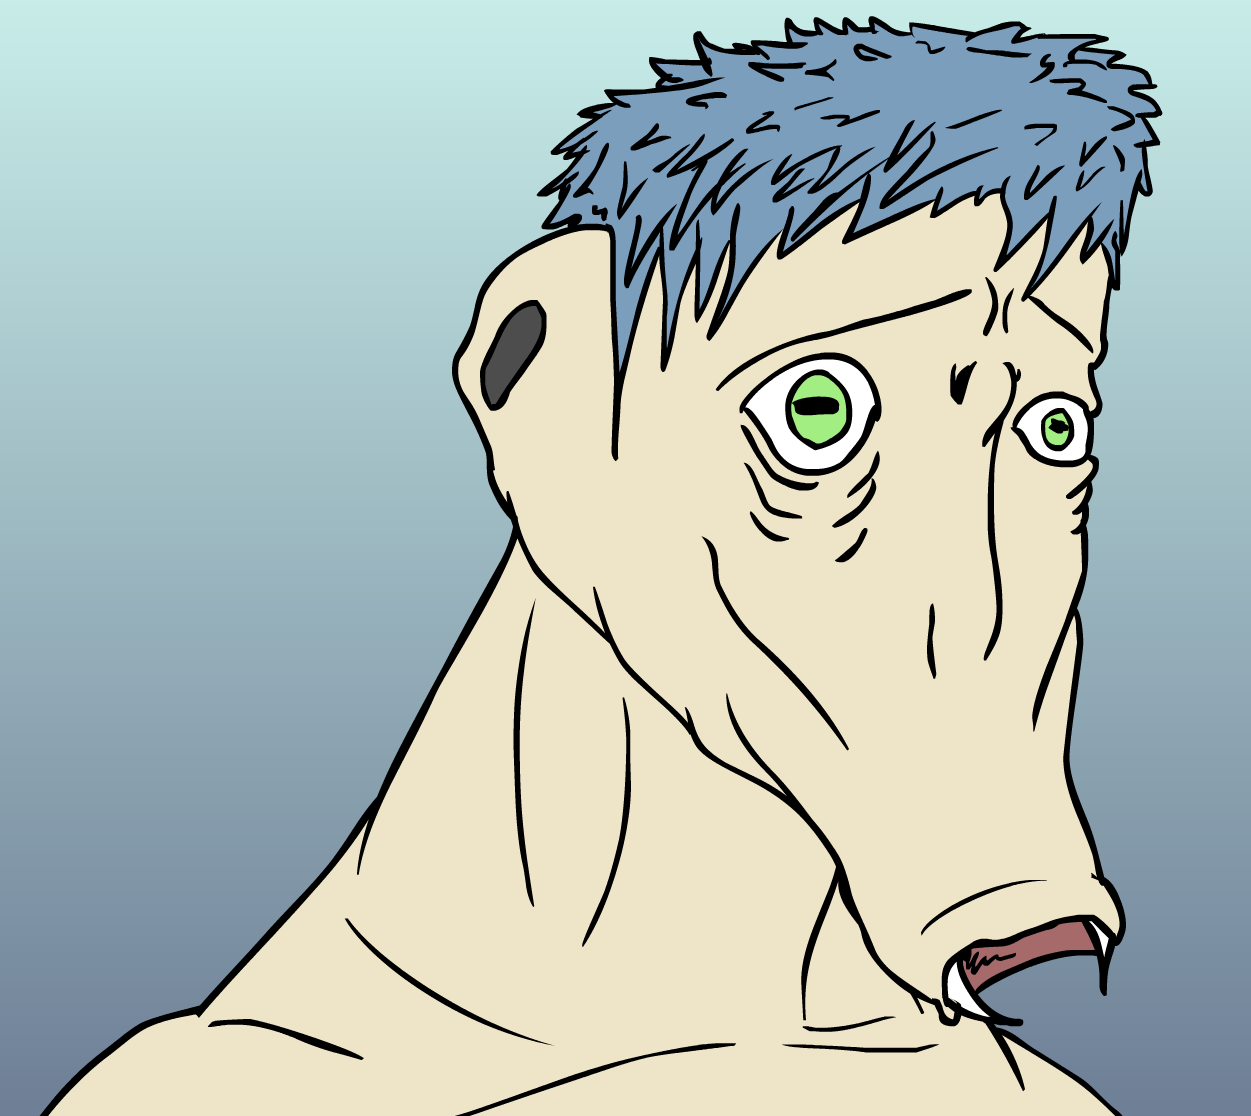 Some sort of blue haired dude